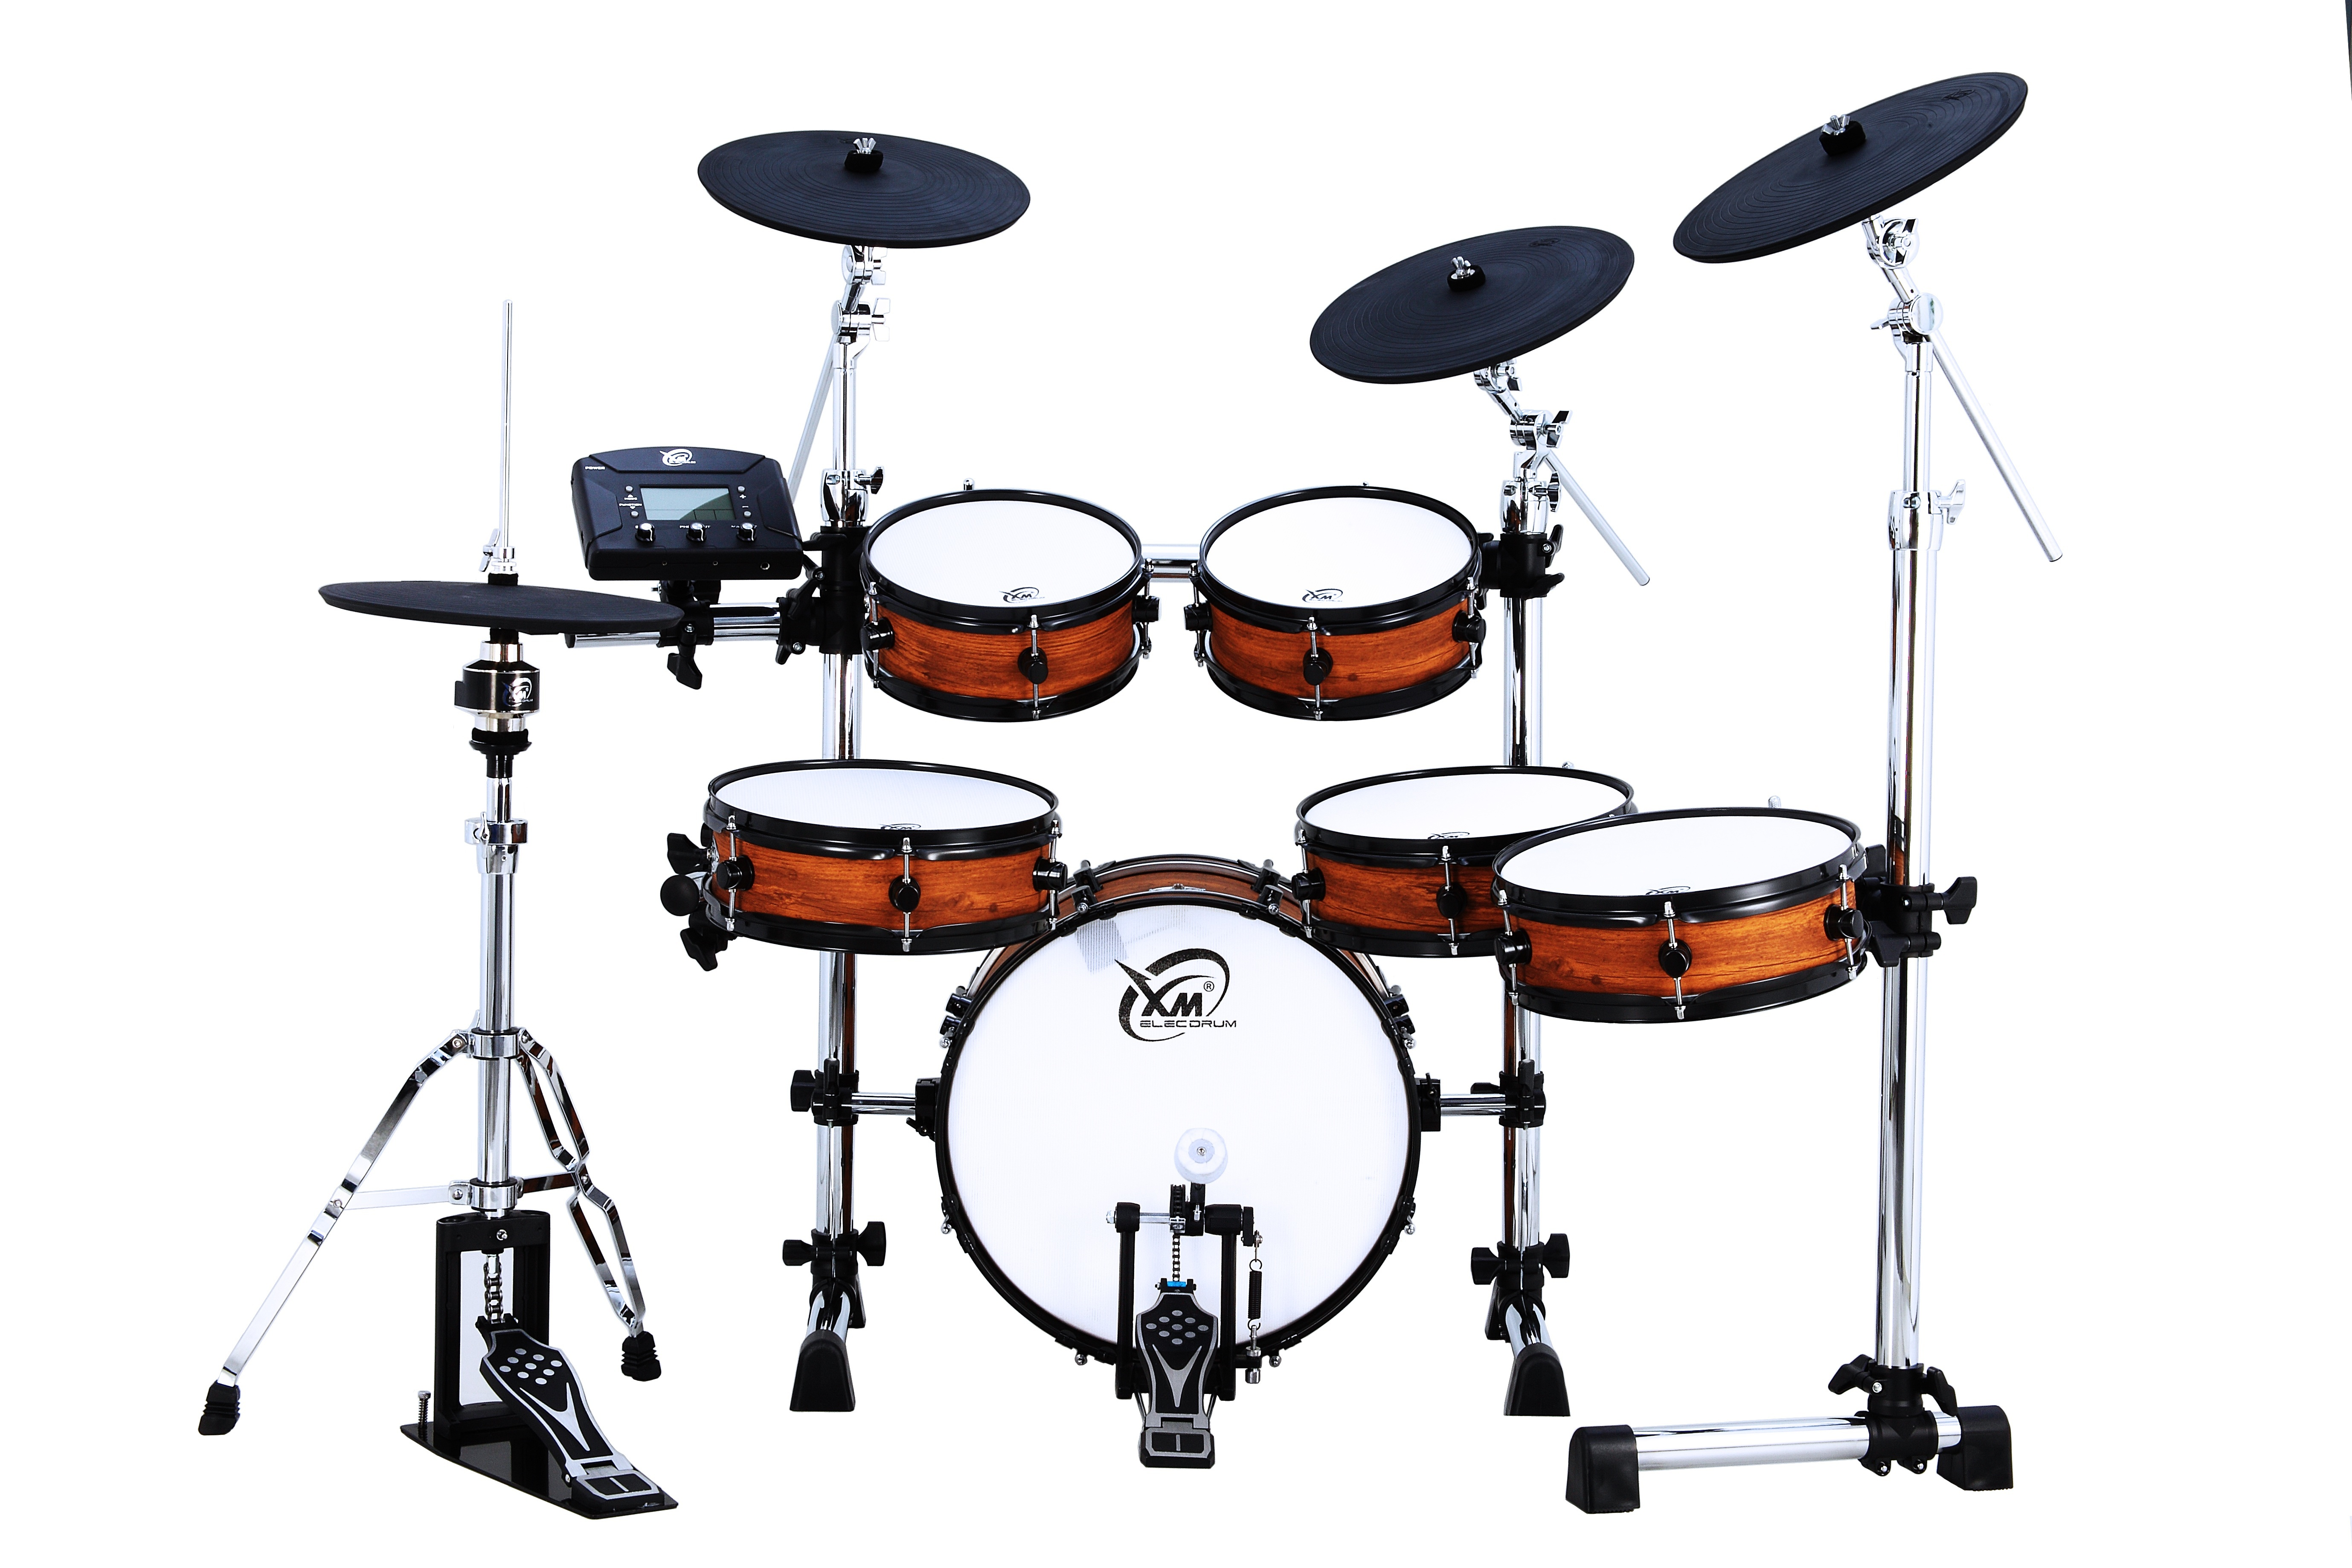 Xm classy series c plus 9sr electronic drum kit xm edrum xm classy series c plus 9sr electronic drum kit solutioingenieria Image collections